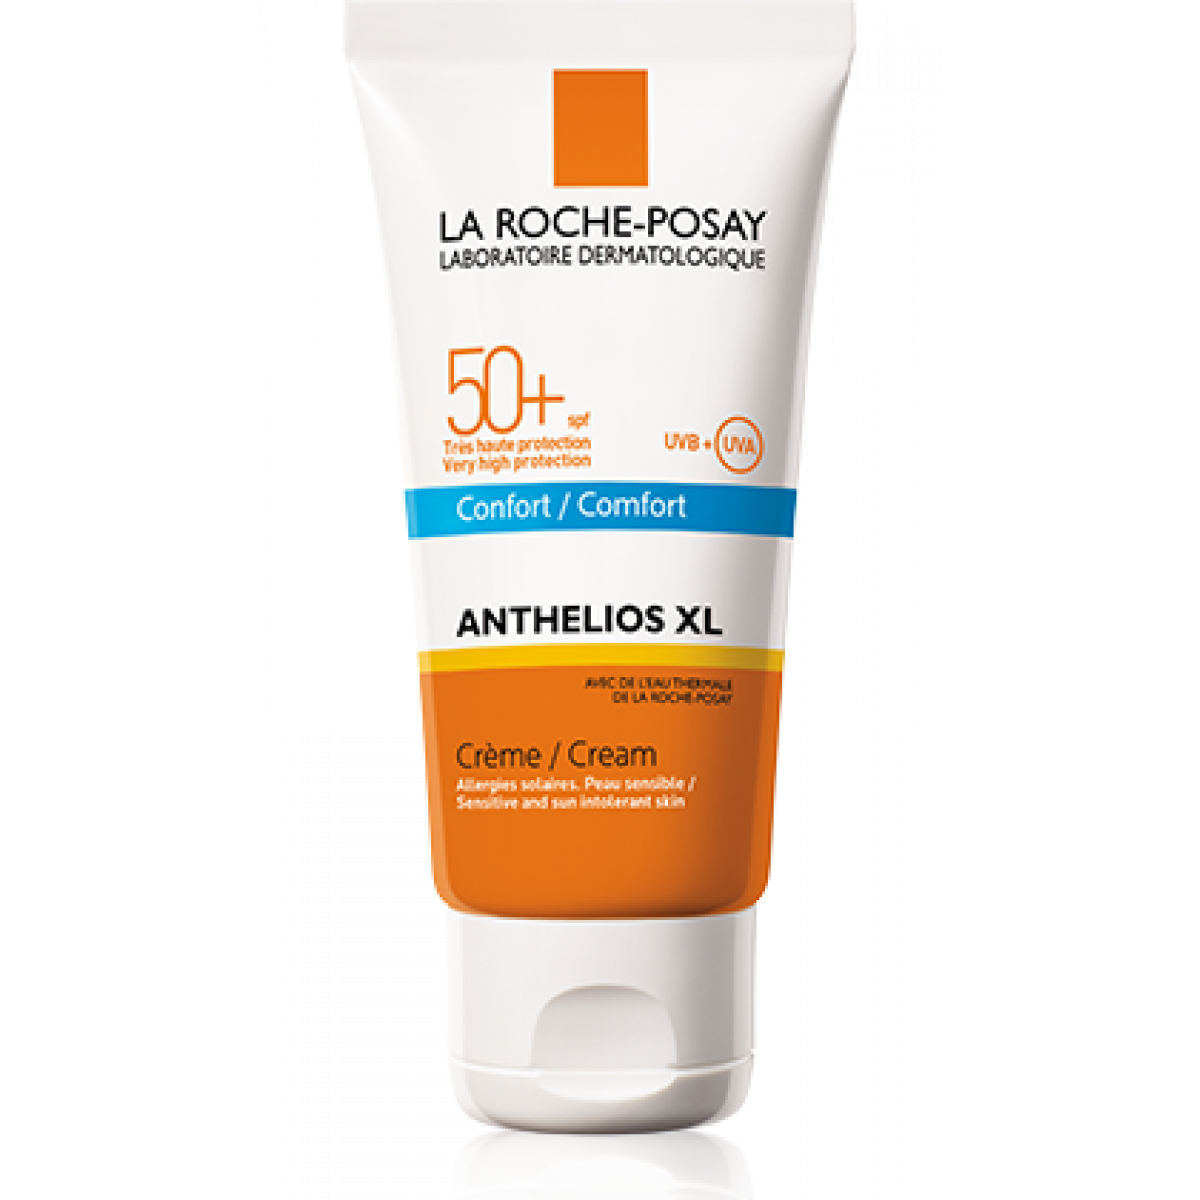 la roche posay anthelios xl cr me fondante spf50 50ml parapharmacie pharmarket. Black Bedroom Furniture Sets. Home Design Ideas